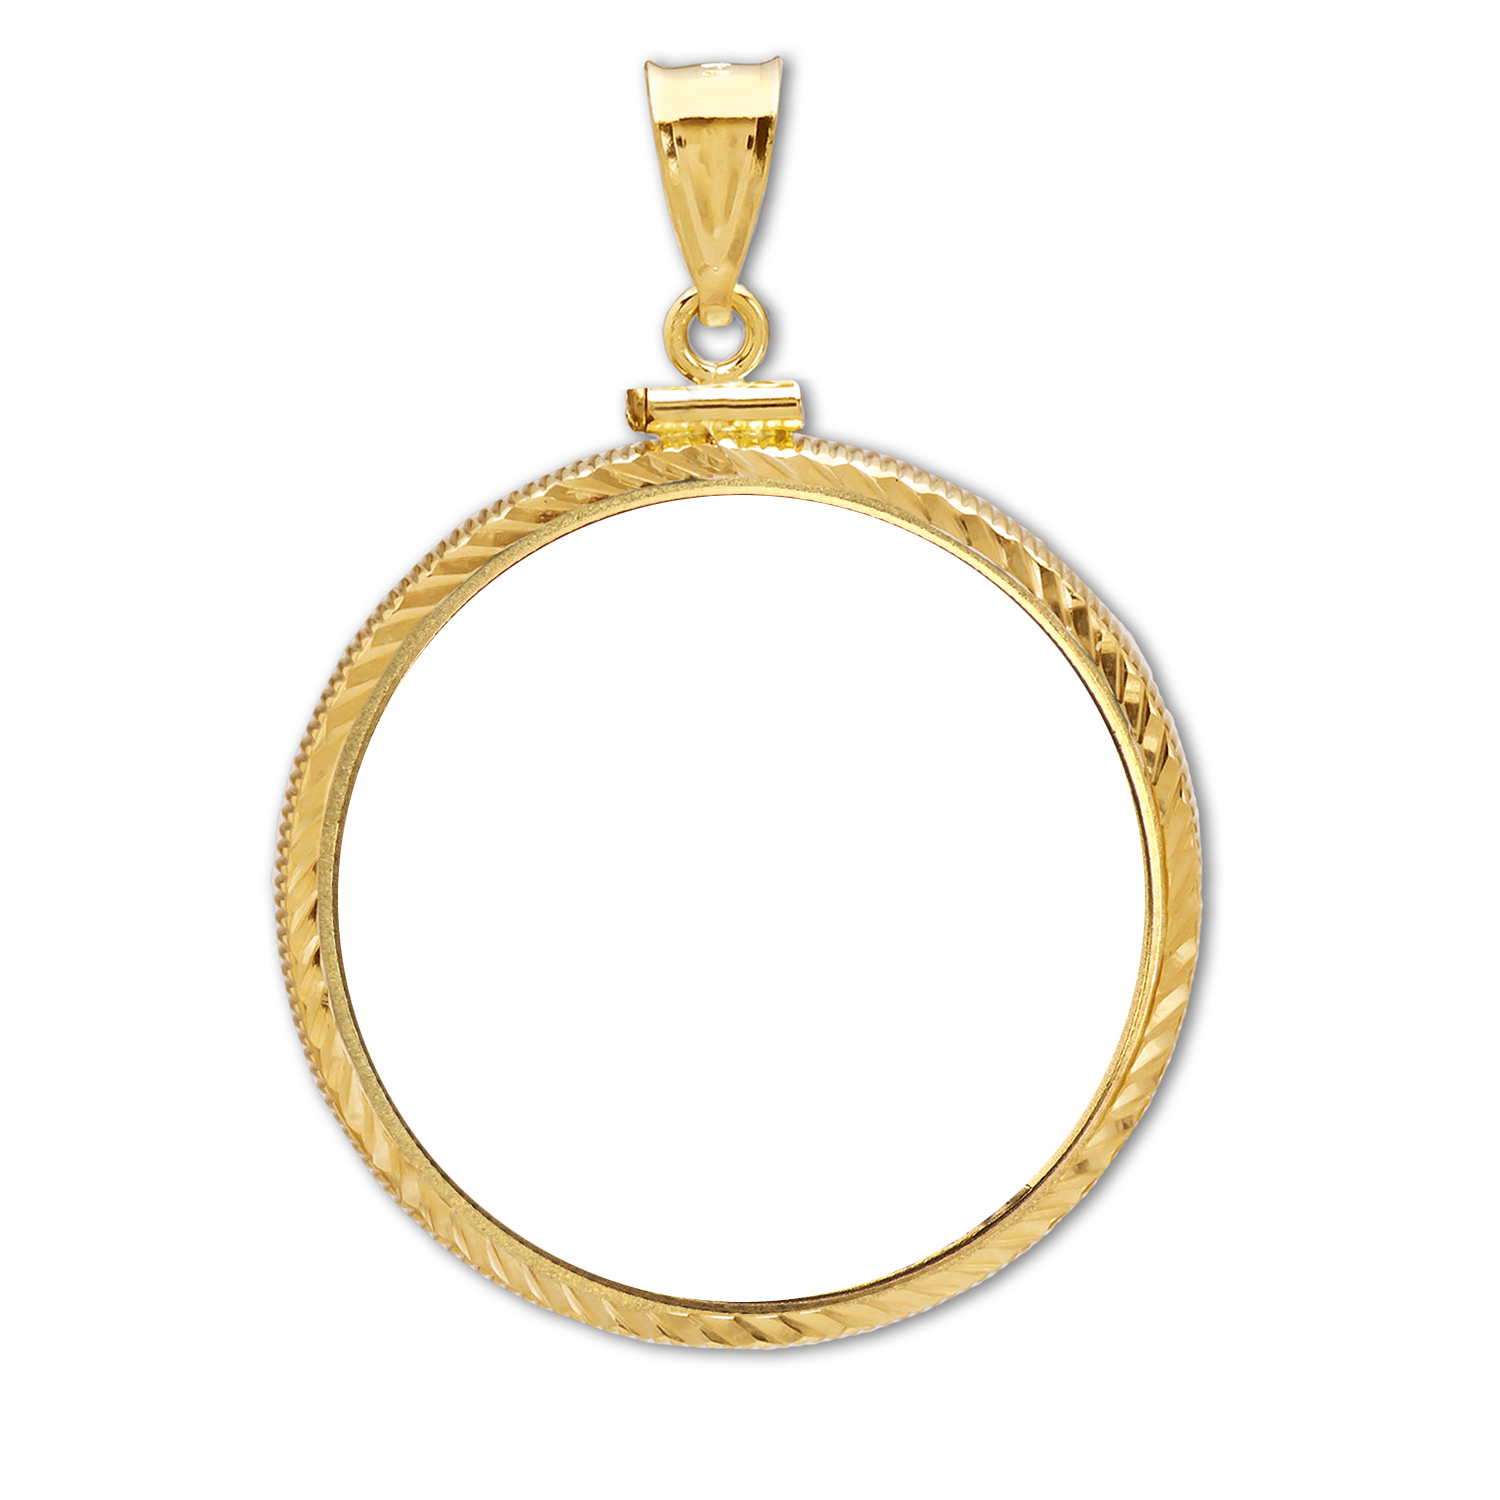 14K Gold Screw-Top Diamond-Cut Coin Bezel - 18 mm